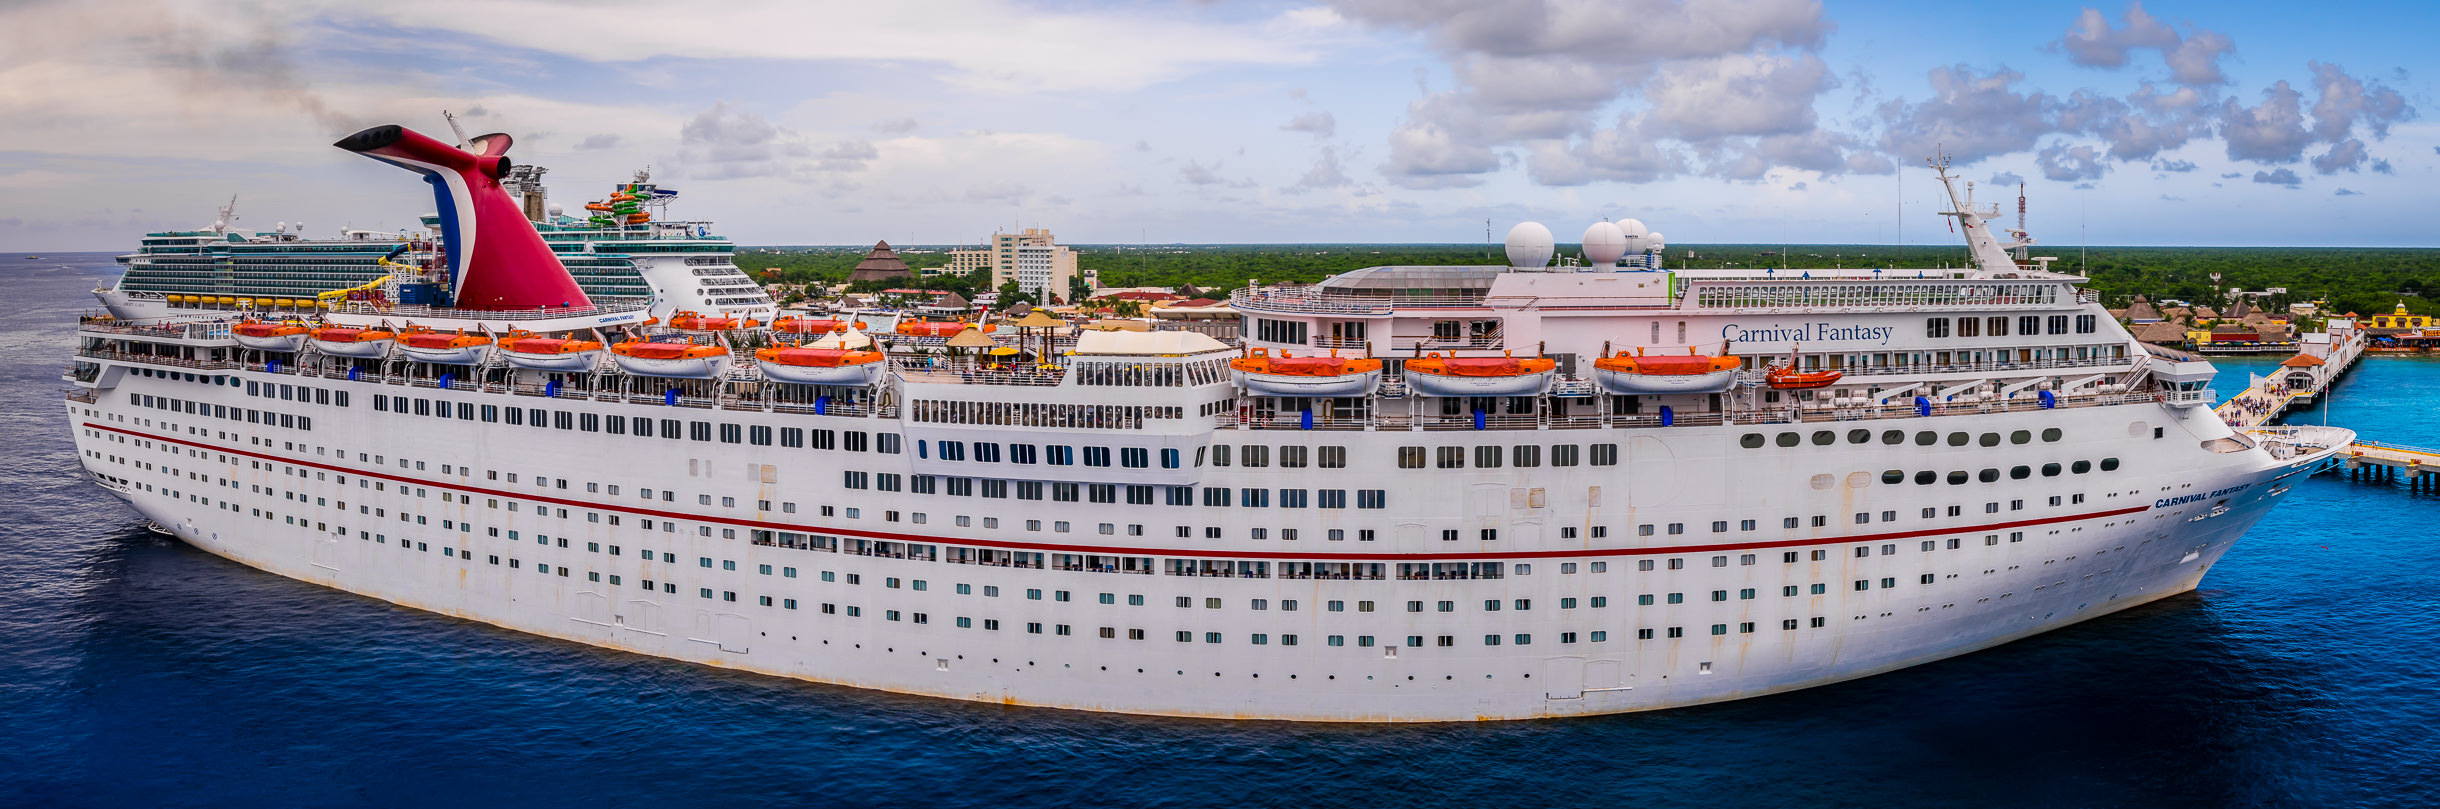 A panoramic view of the cruise shipCarnival Fantasy, docked in Cozumel, Mexico.